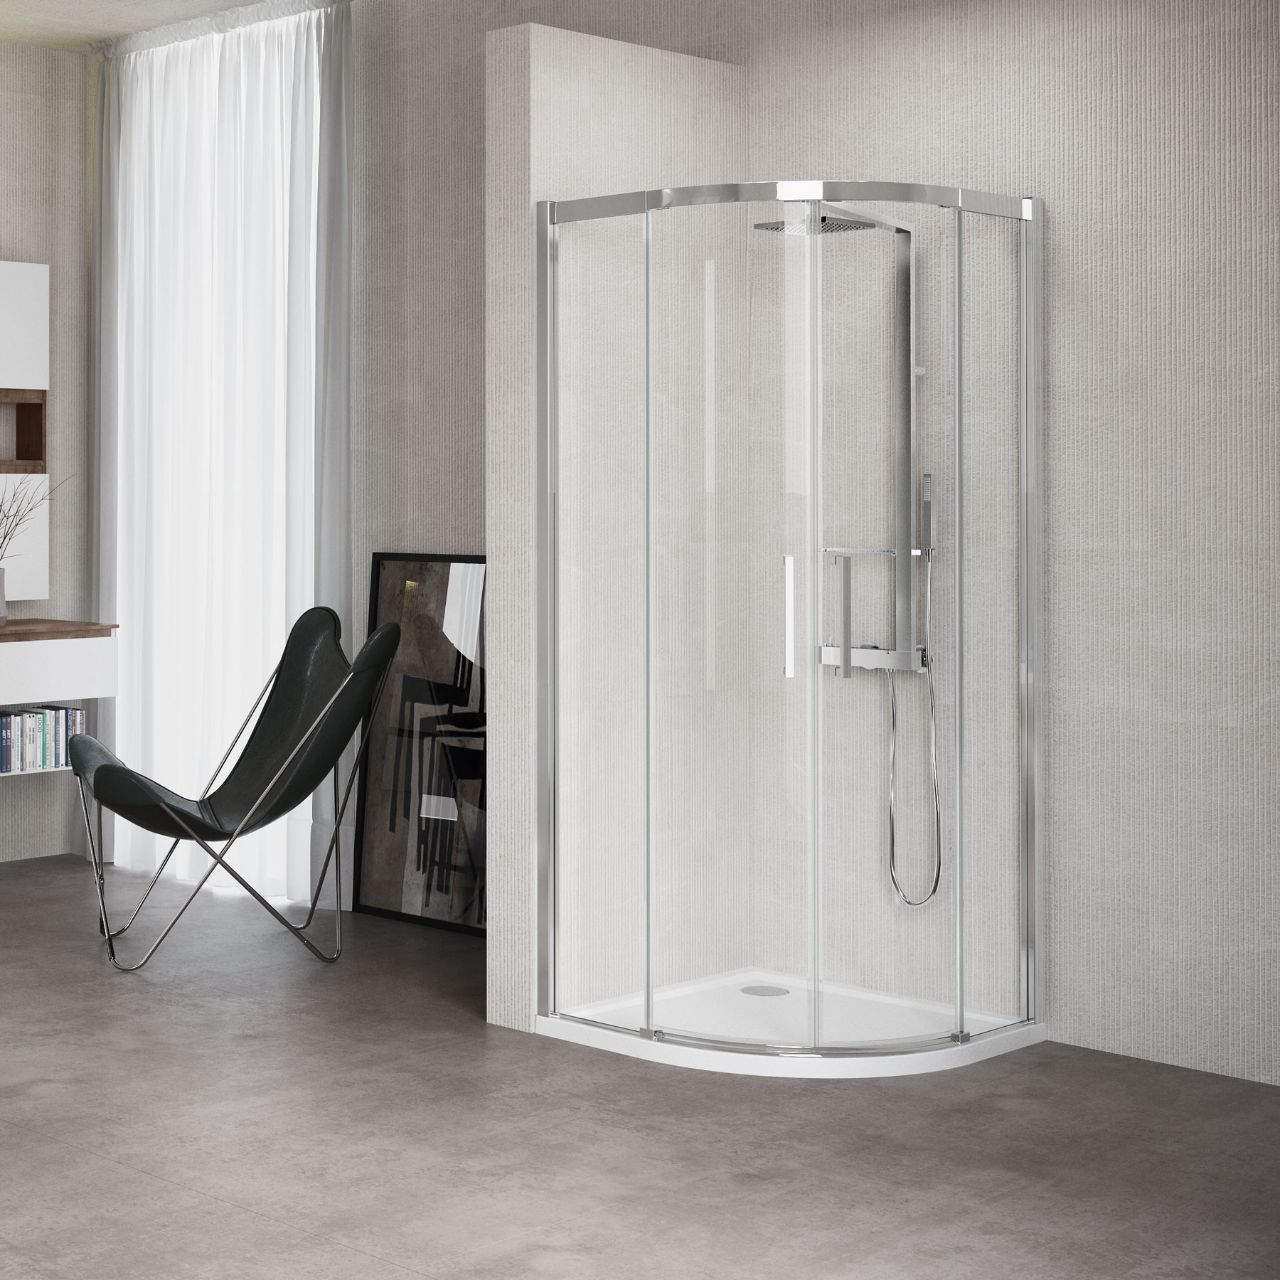 shower enclosures kuadra r novellini